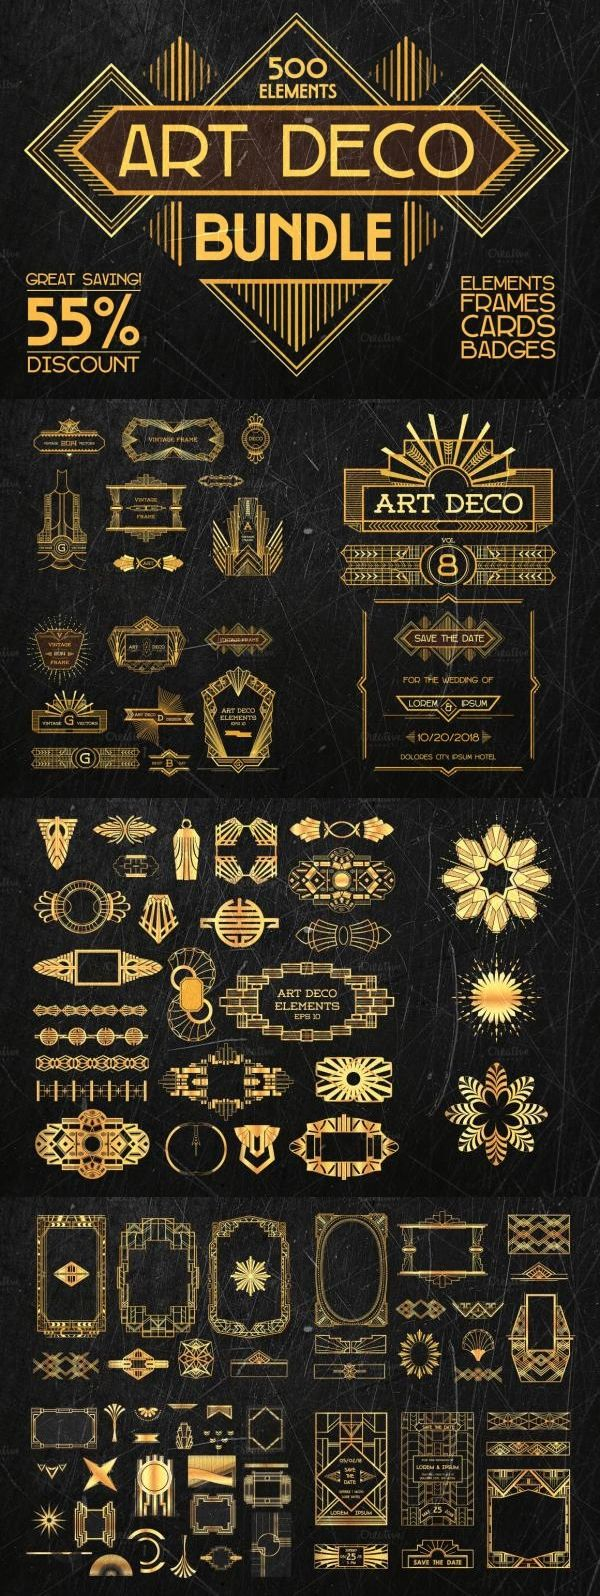 This bundle contains 500 elements: design elements, frames, greeting cards, badges, labels. Check it out on Creative Market!